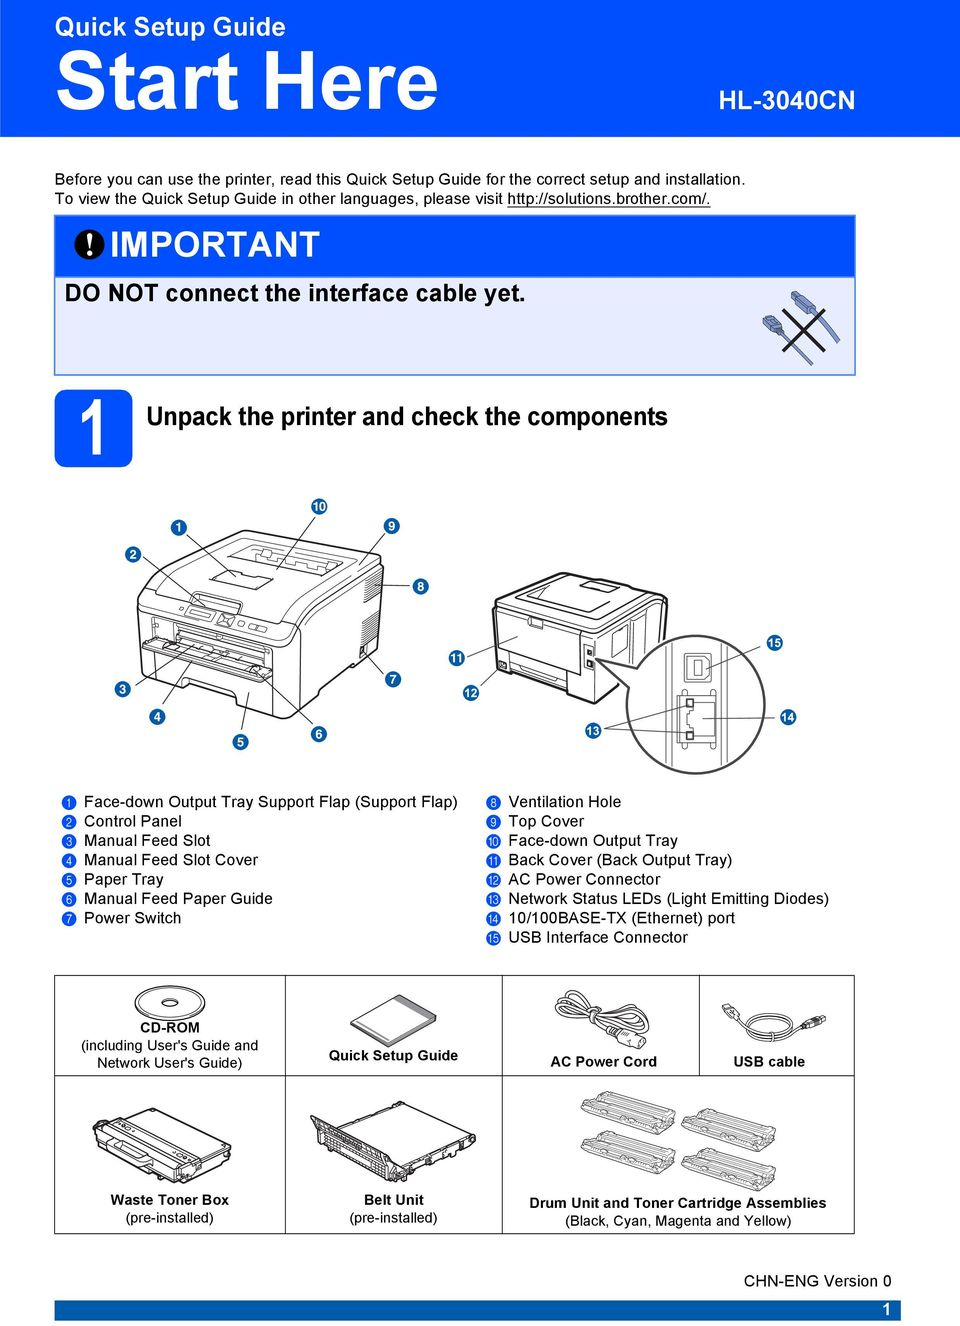 1 Unpck the printer nd check the components 3 Fce-down Output Try Support Flp (Support Flp) b Control Pnel c Mnul Feed Slot d Mnul Feed Slot Cover e Pper Try f Mnul Feed Pper Guide g Power Switch h